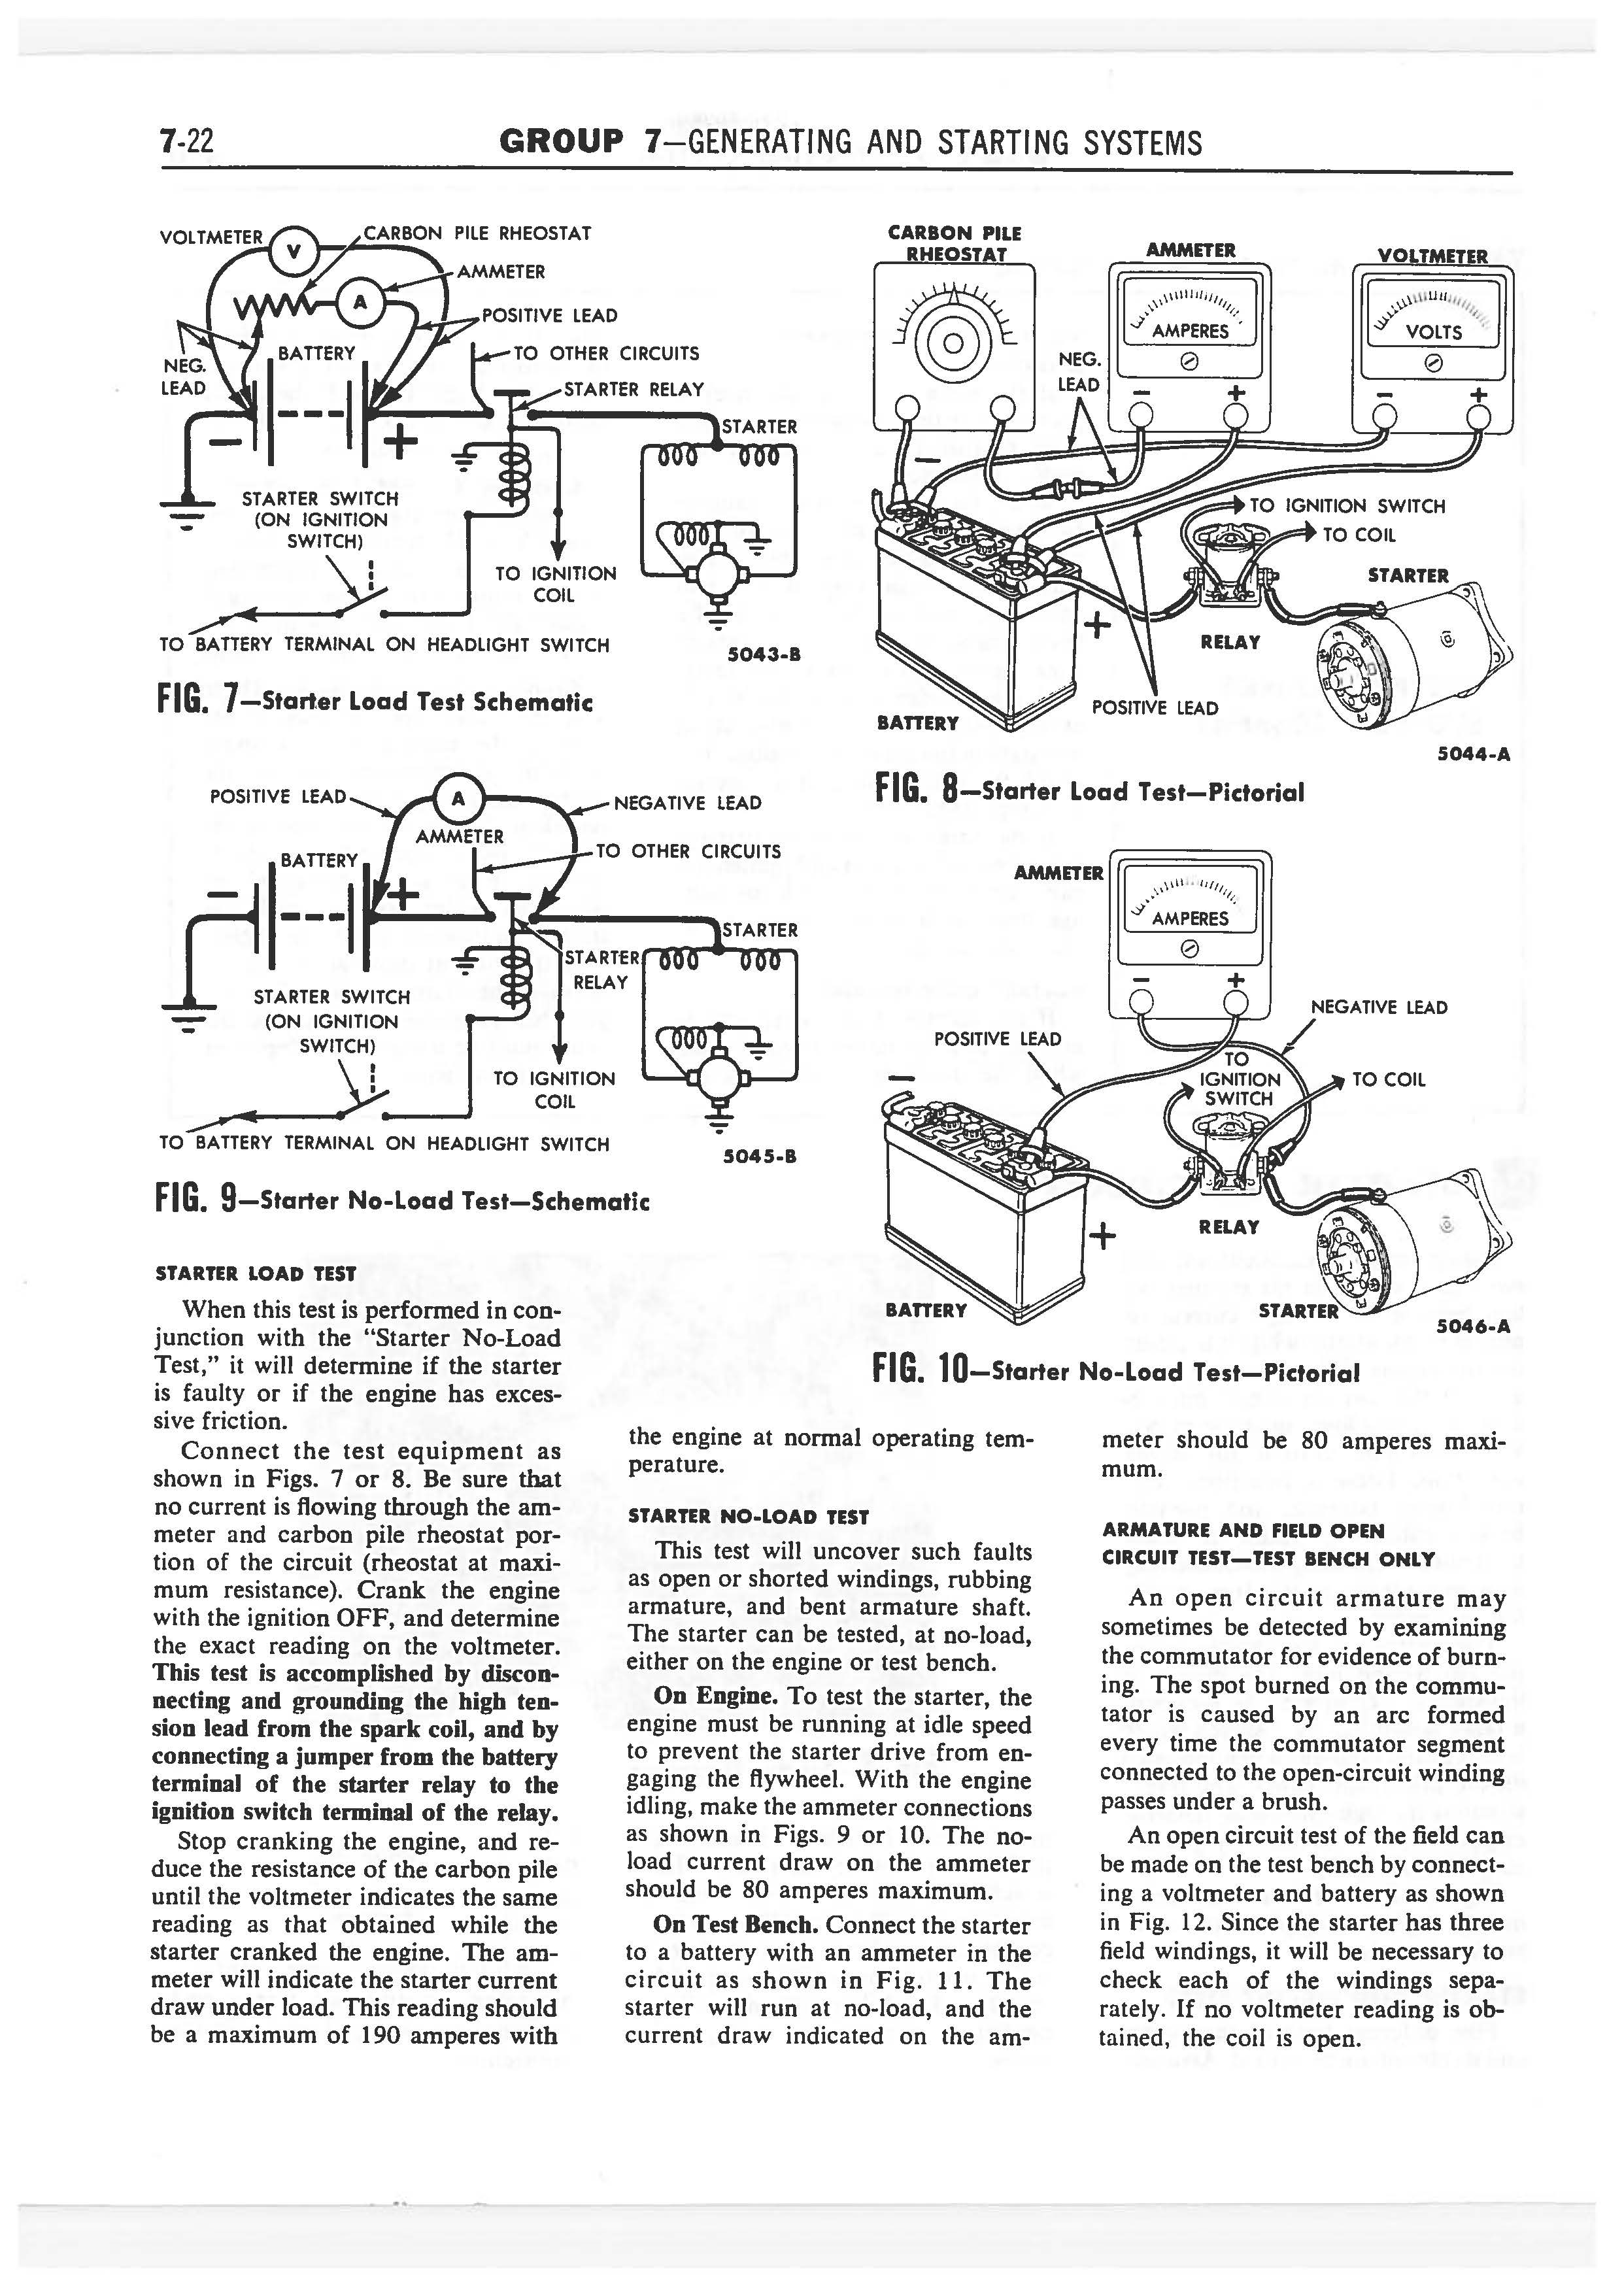 1958 Ford Thunderbird Shop Manual page 260 of 360